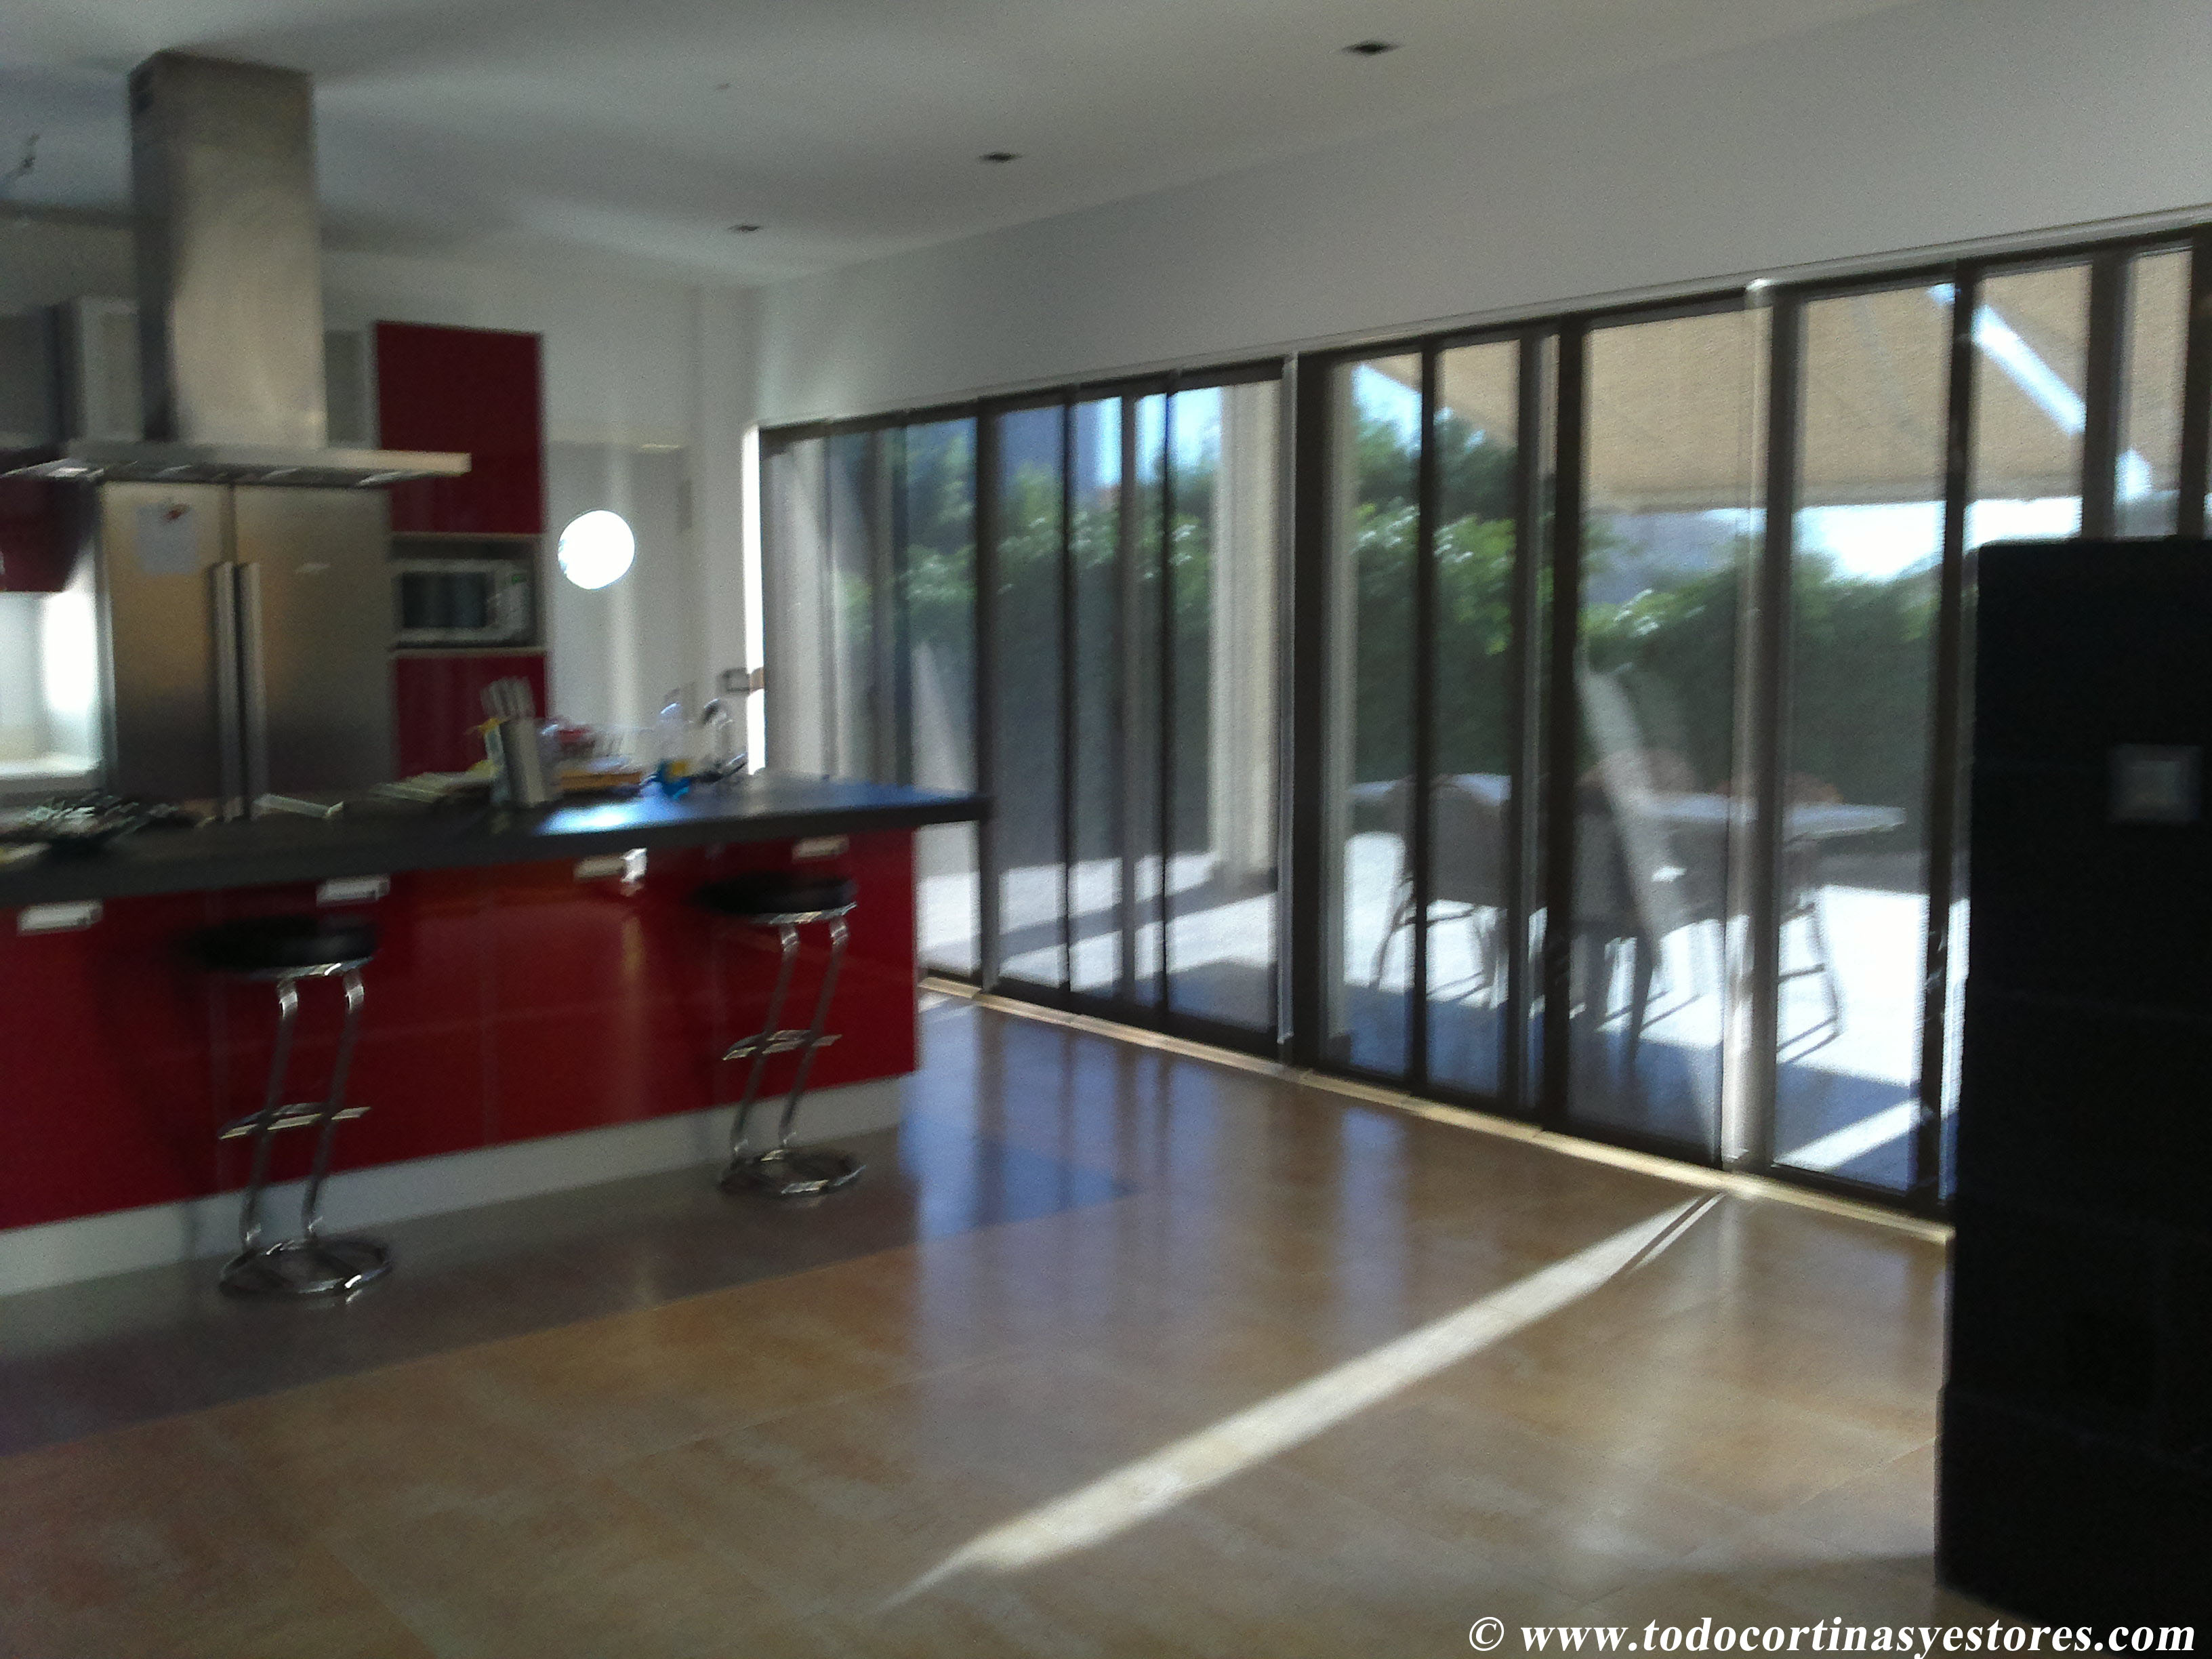 Estores Enrollables Cocina Cortinas Screen Cocina Estores Enrollables Polyscreen